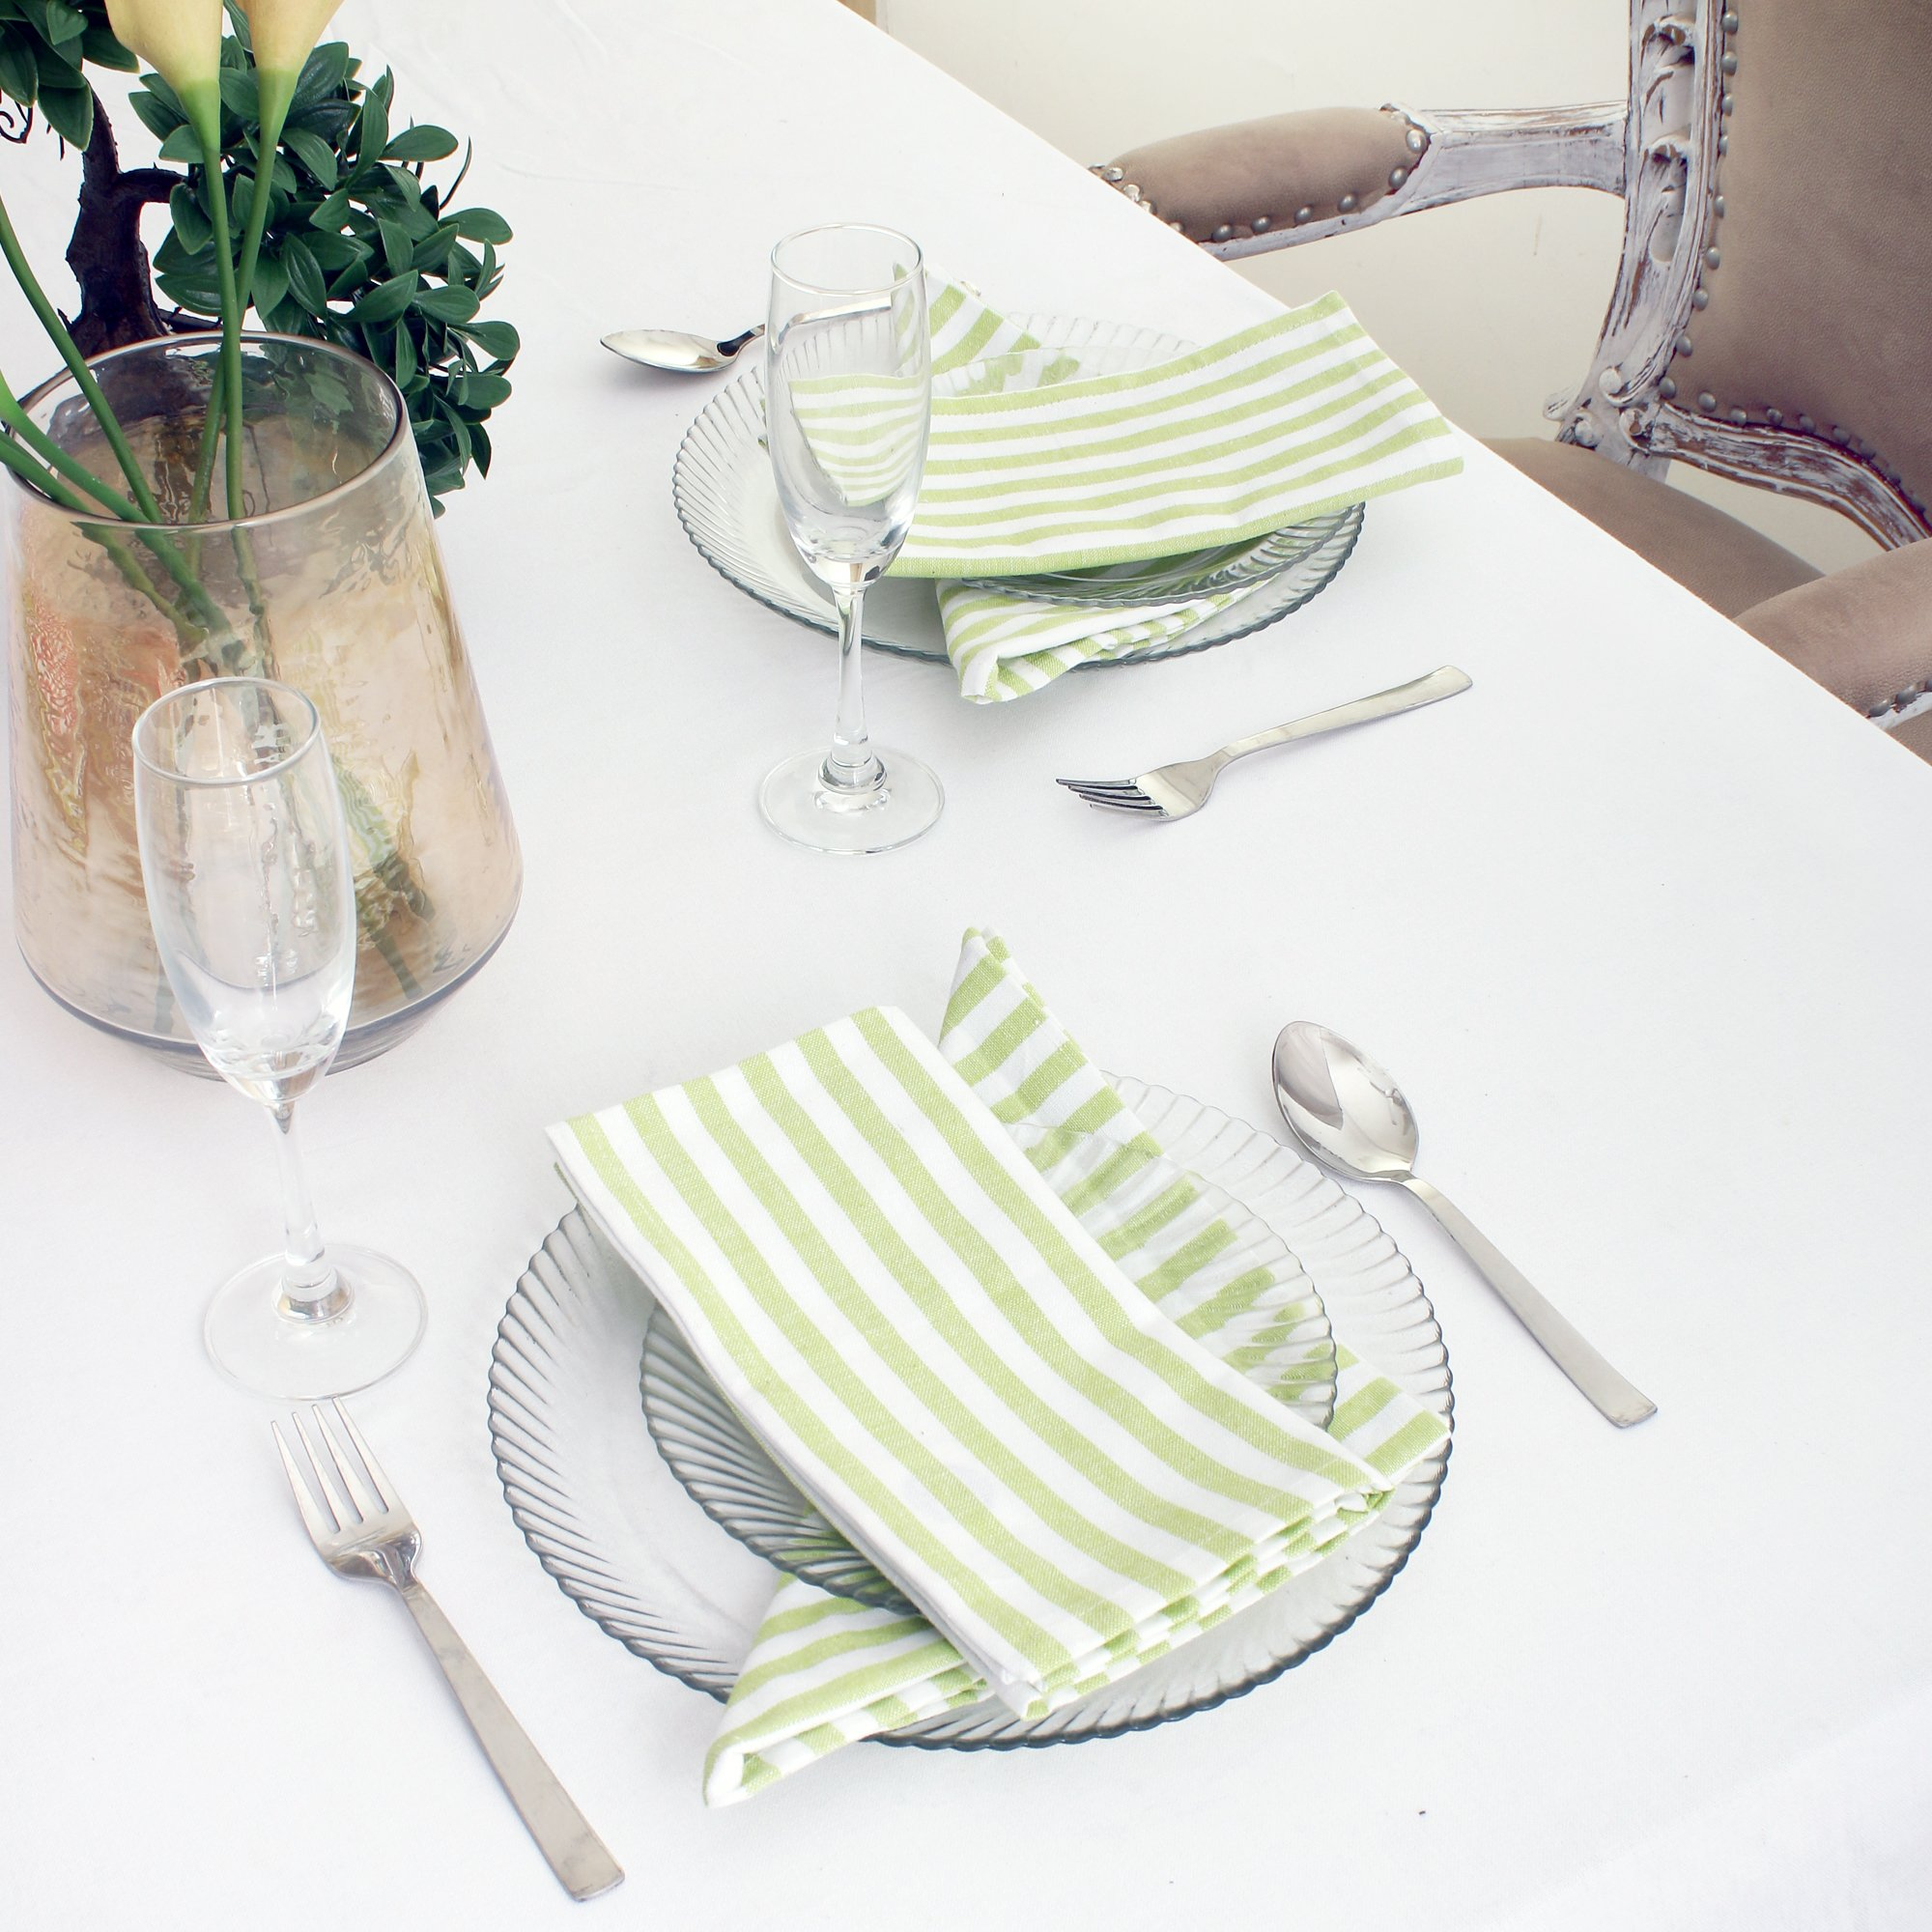 Cotton Dinner Napkins Green & White Stripe, Set of 12 (20 x 20 Inches), Over Sized, Embroidery And Print, Lint Free, Quick Dry, Hemmed With Mitered Corners